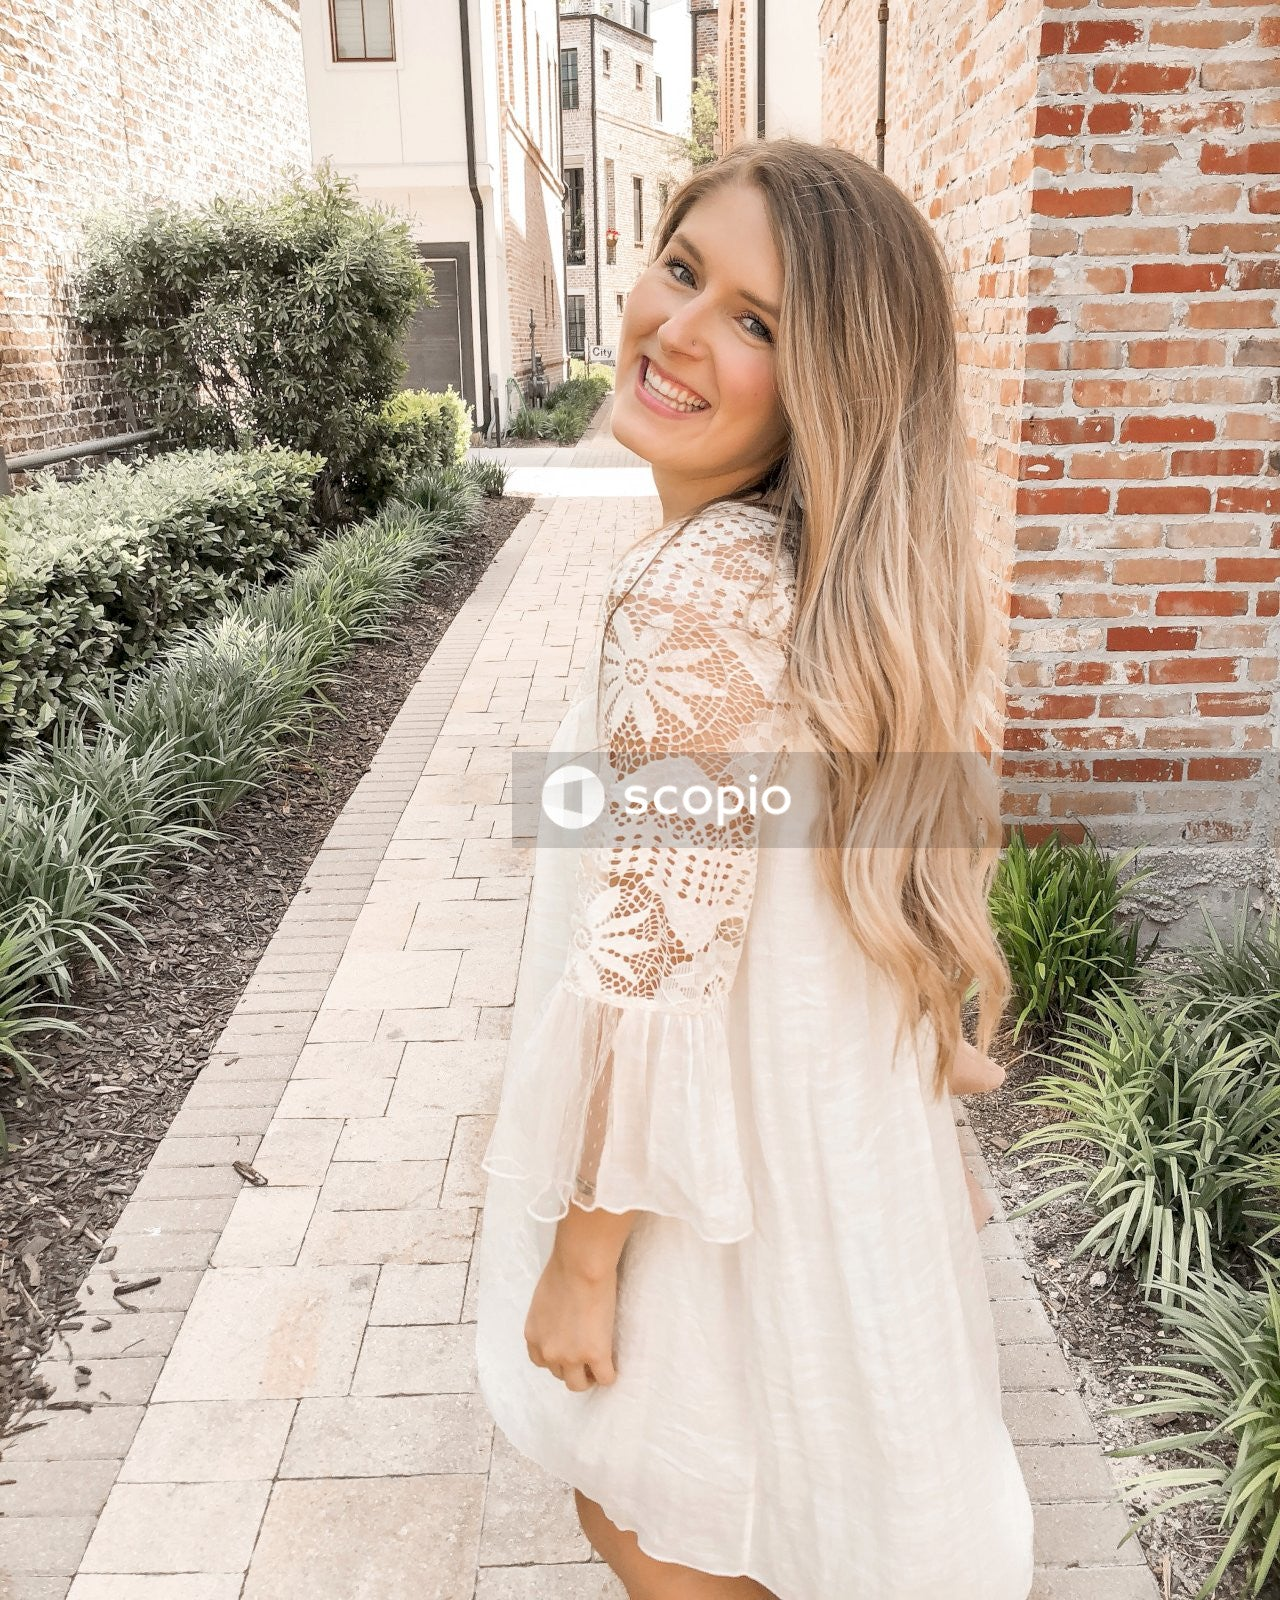 Woman in white and brown floral long sleeve dress standing on brick pathway